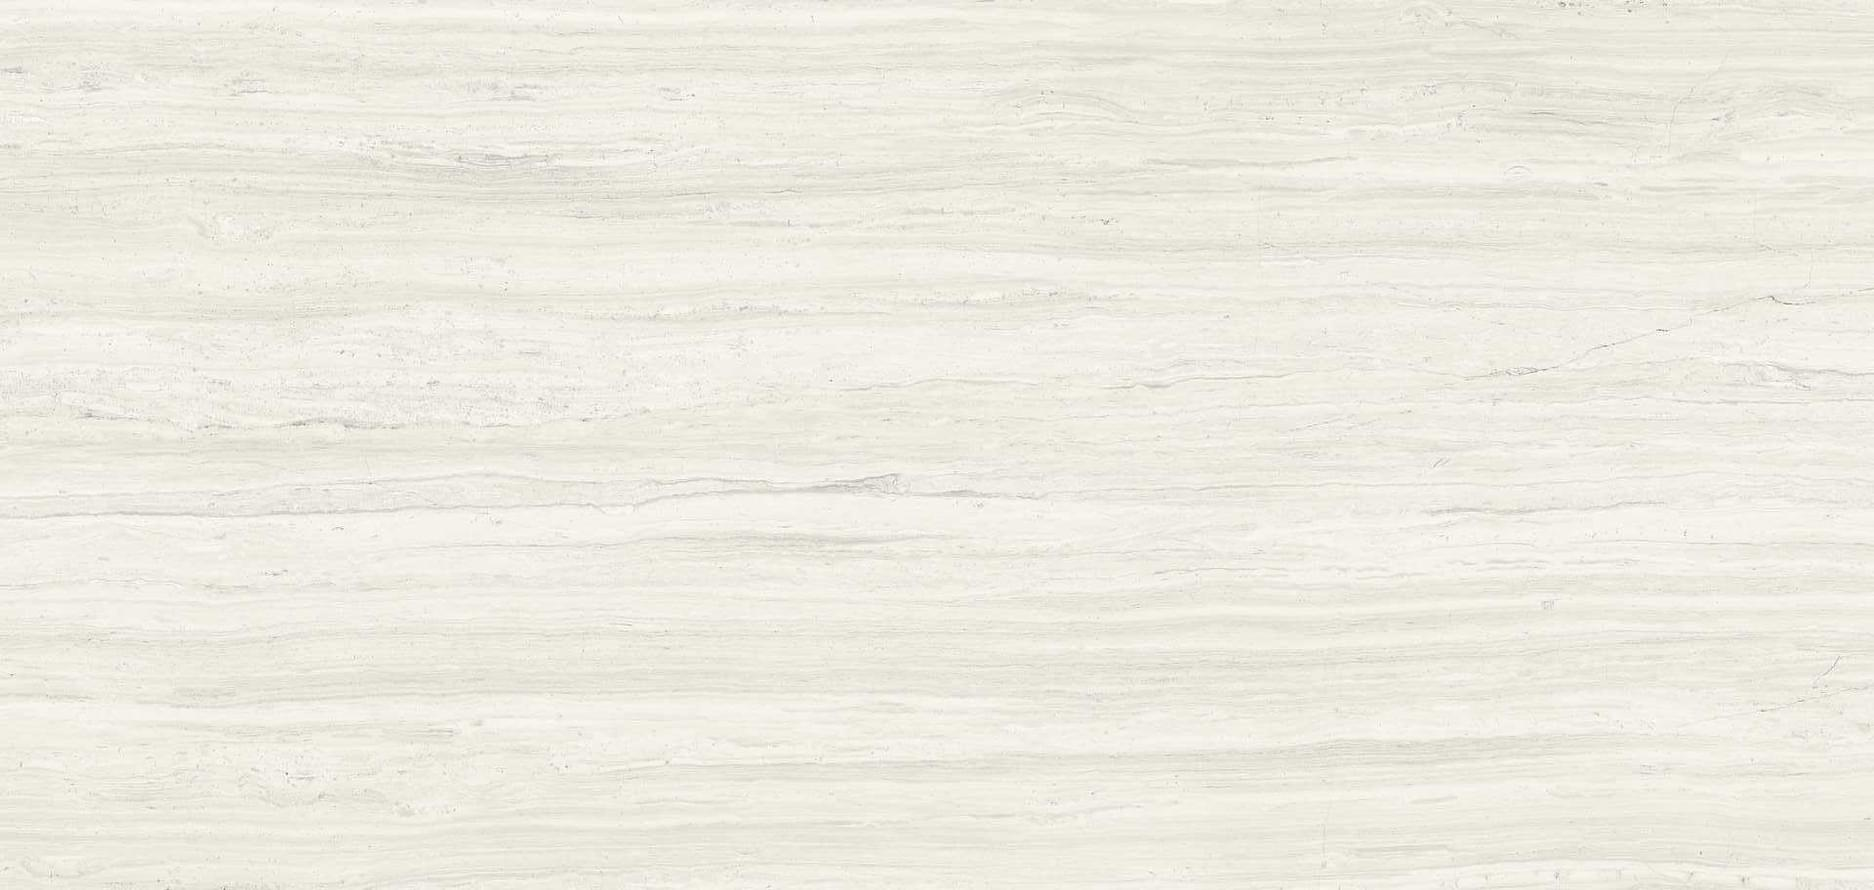 Grespania Silk Coverlam Blanco Natural 5.6 120x260